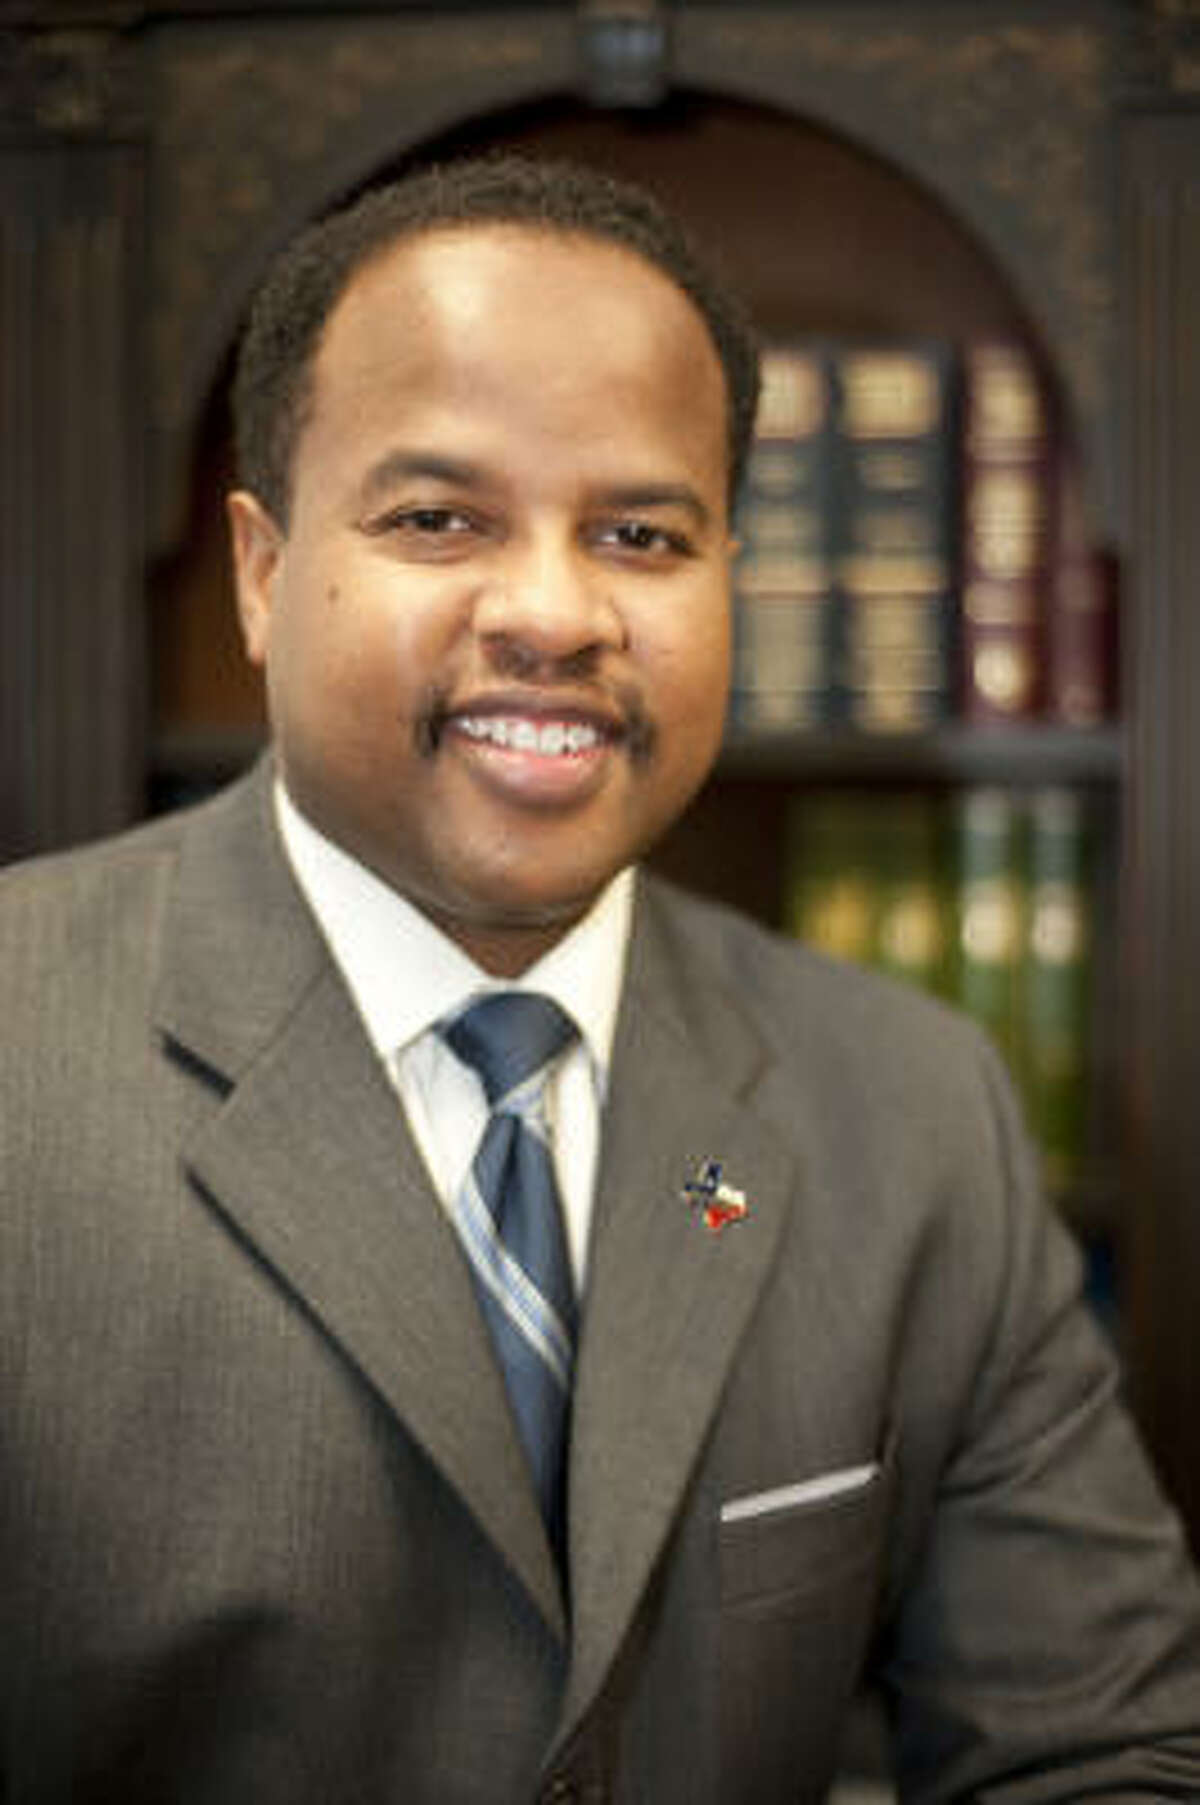 State Rep. Ron Reynolds, D-Missouri City, denied the allegations against him.